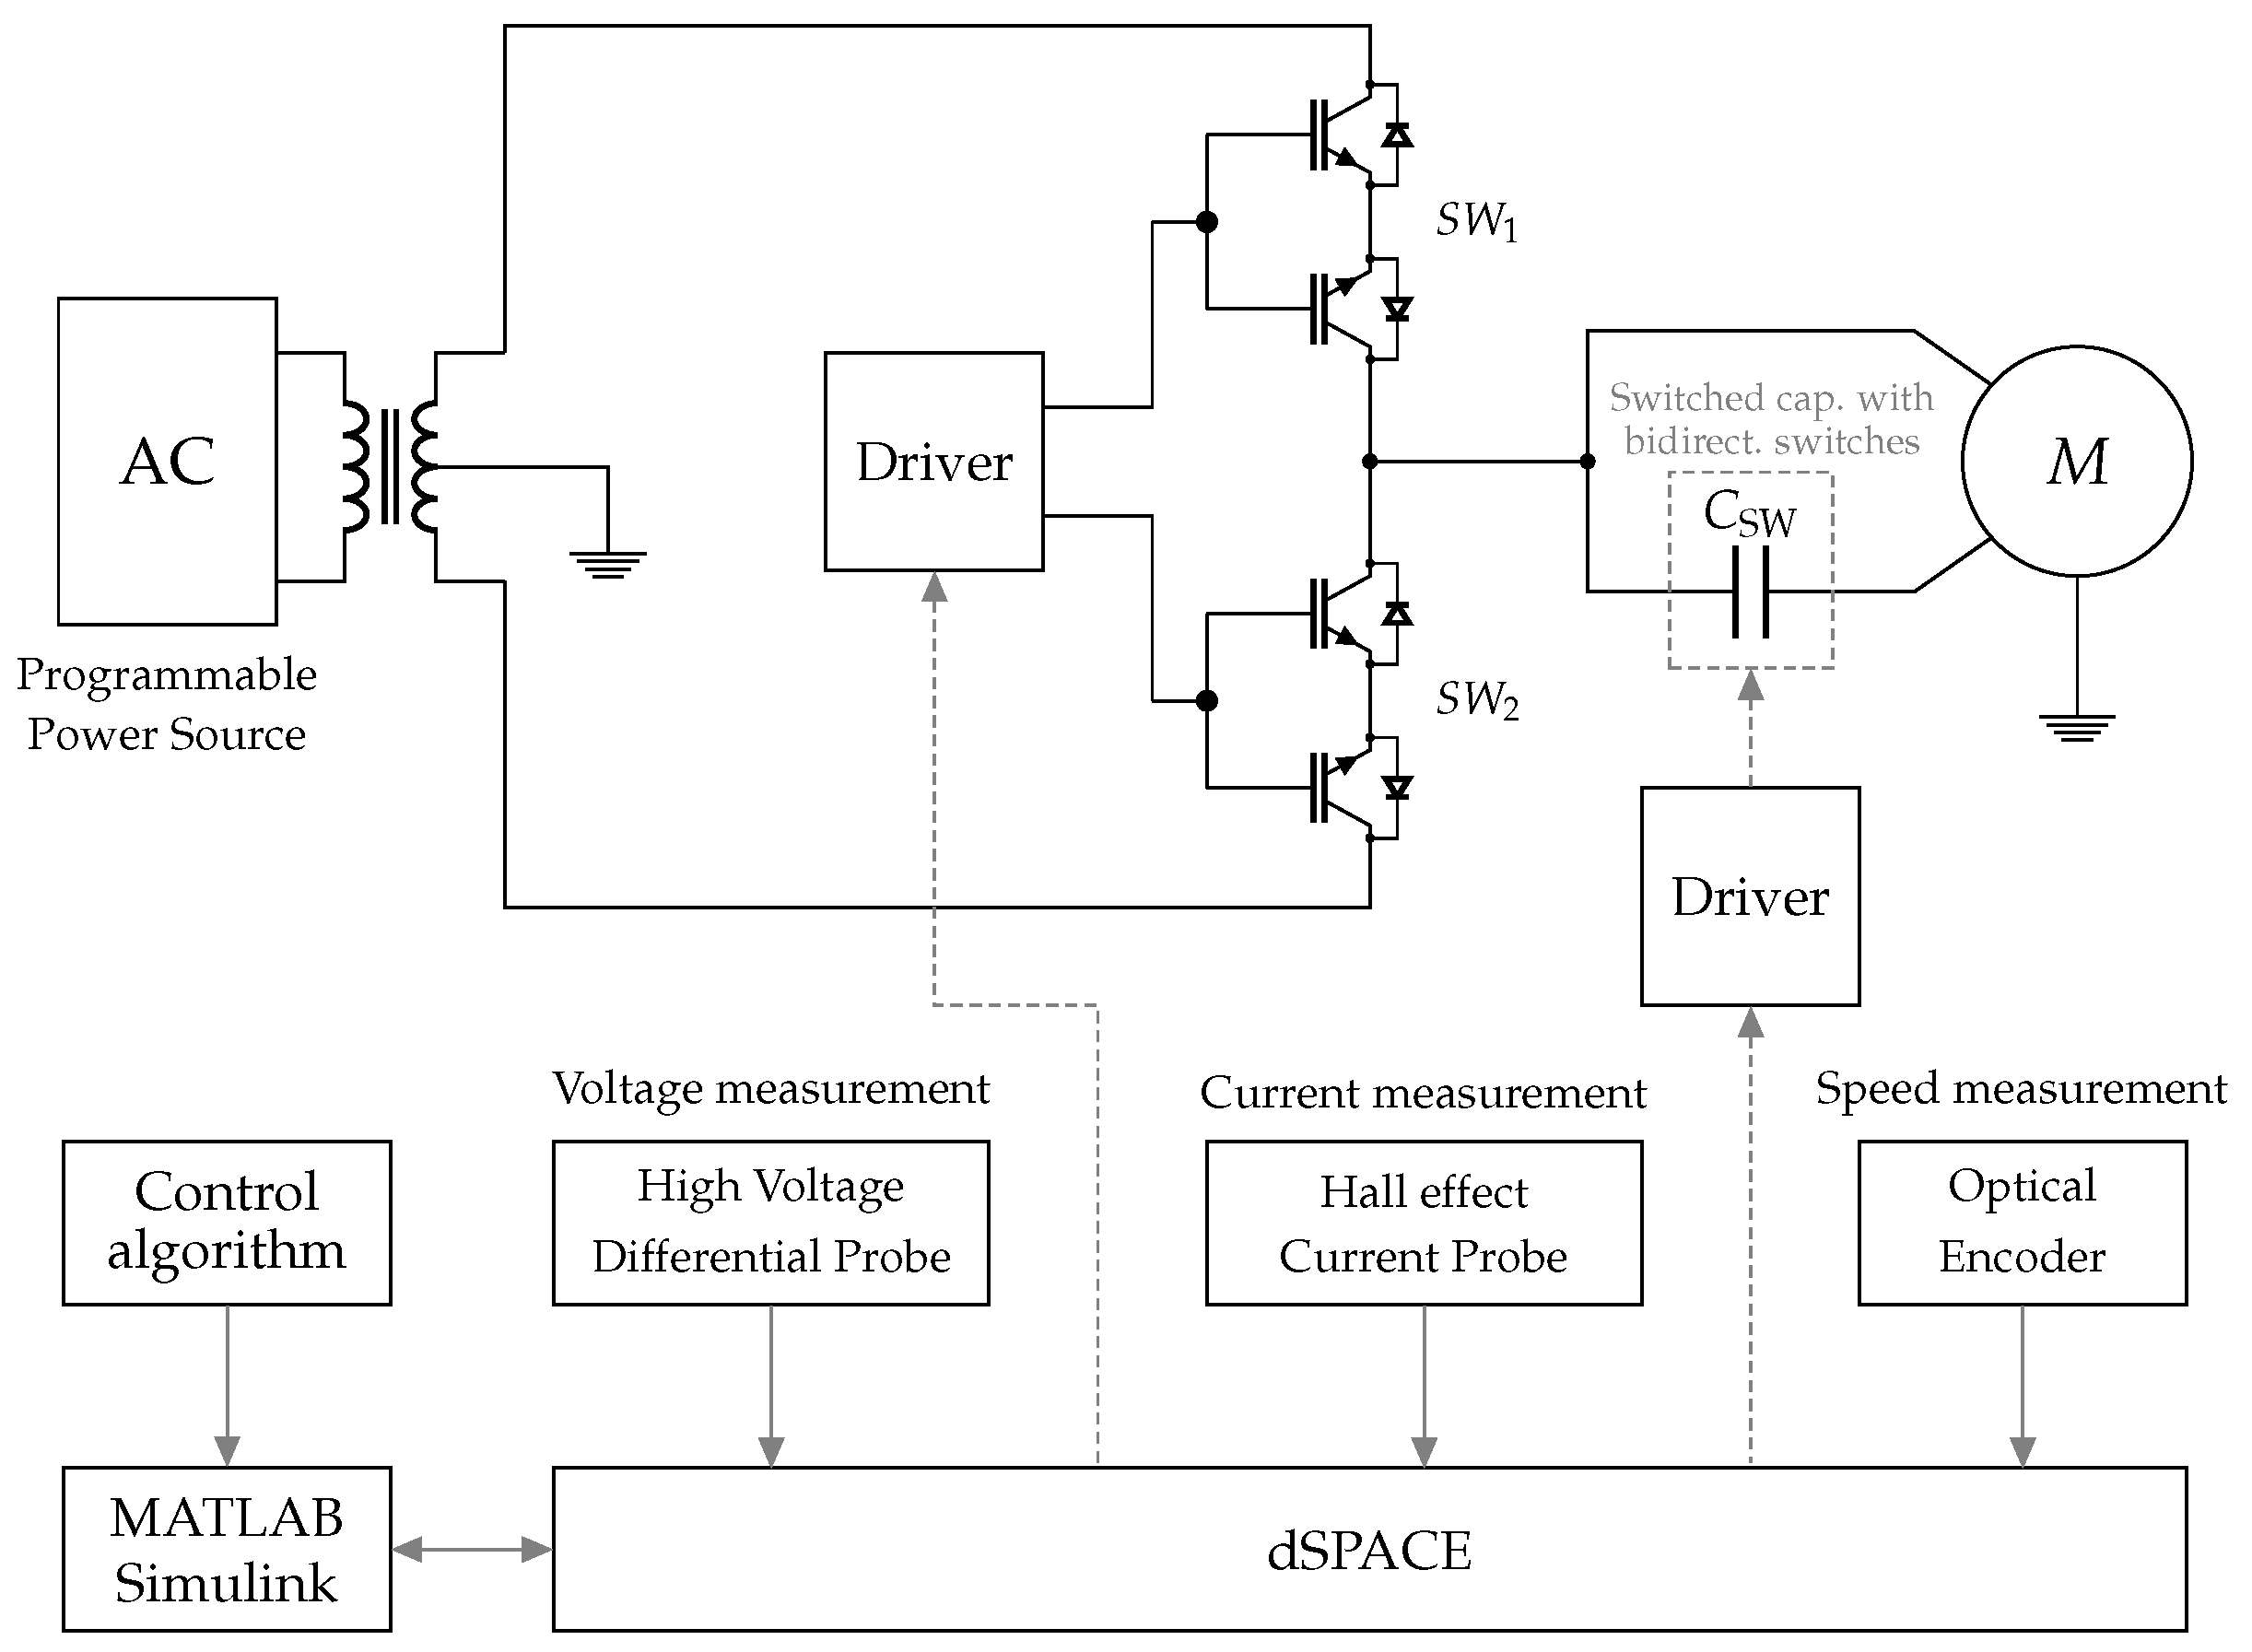 Energies Free Full Text Control Of Current Phase Advancing In Mosfet Switch Electronic Circuit Diagram Antiseries 11 02761 G023